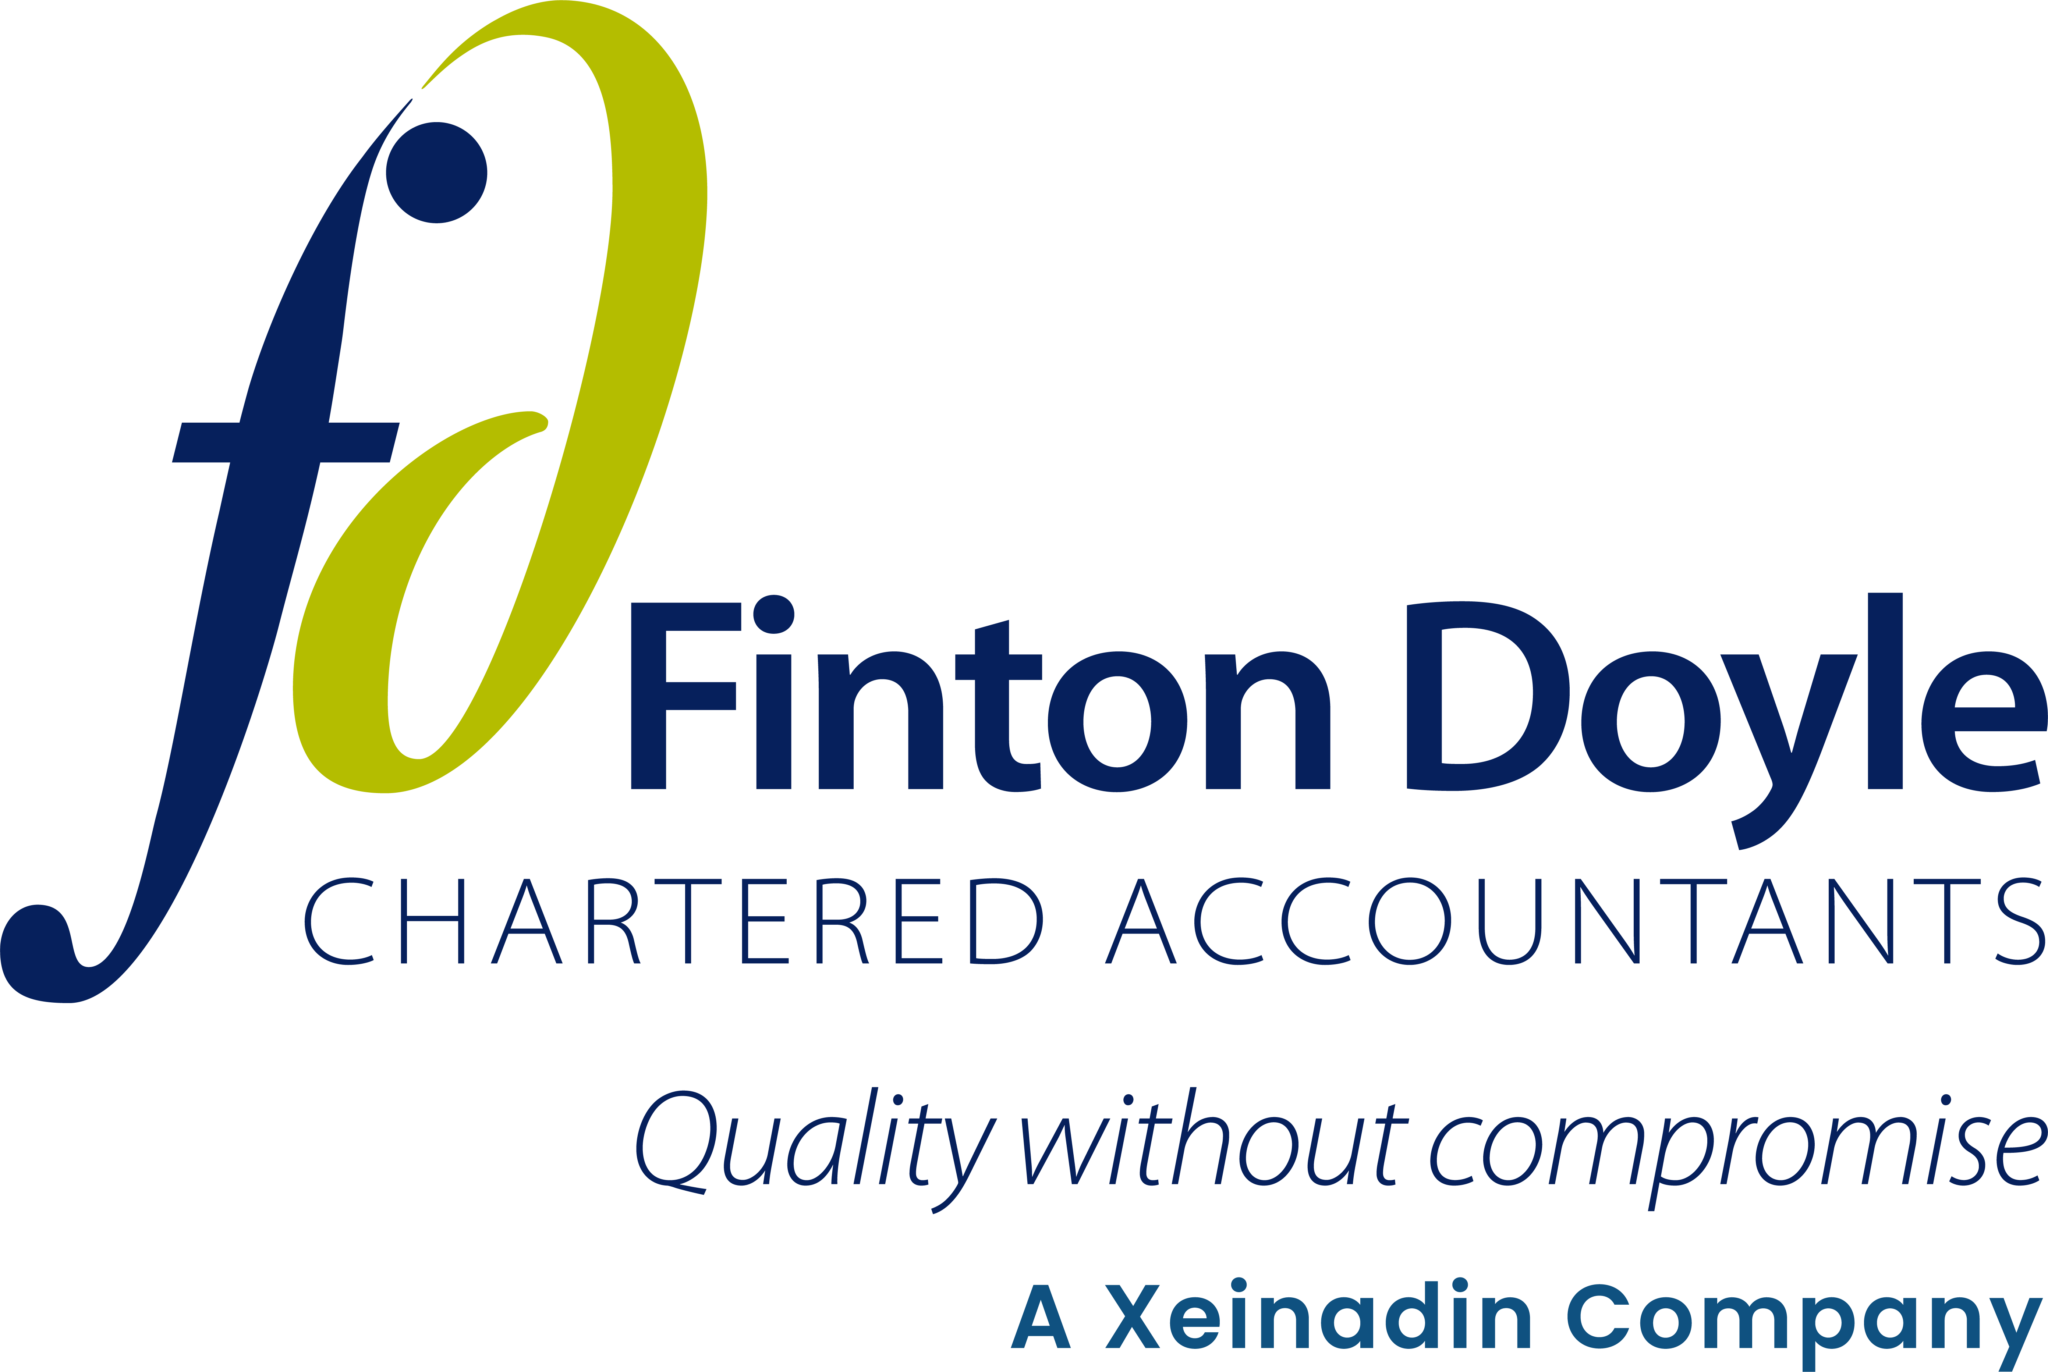 Finton Doyle Chartered Accountants logo